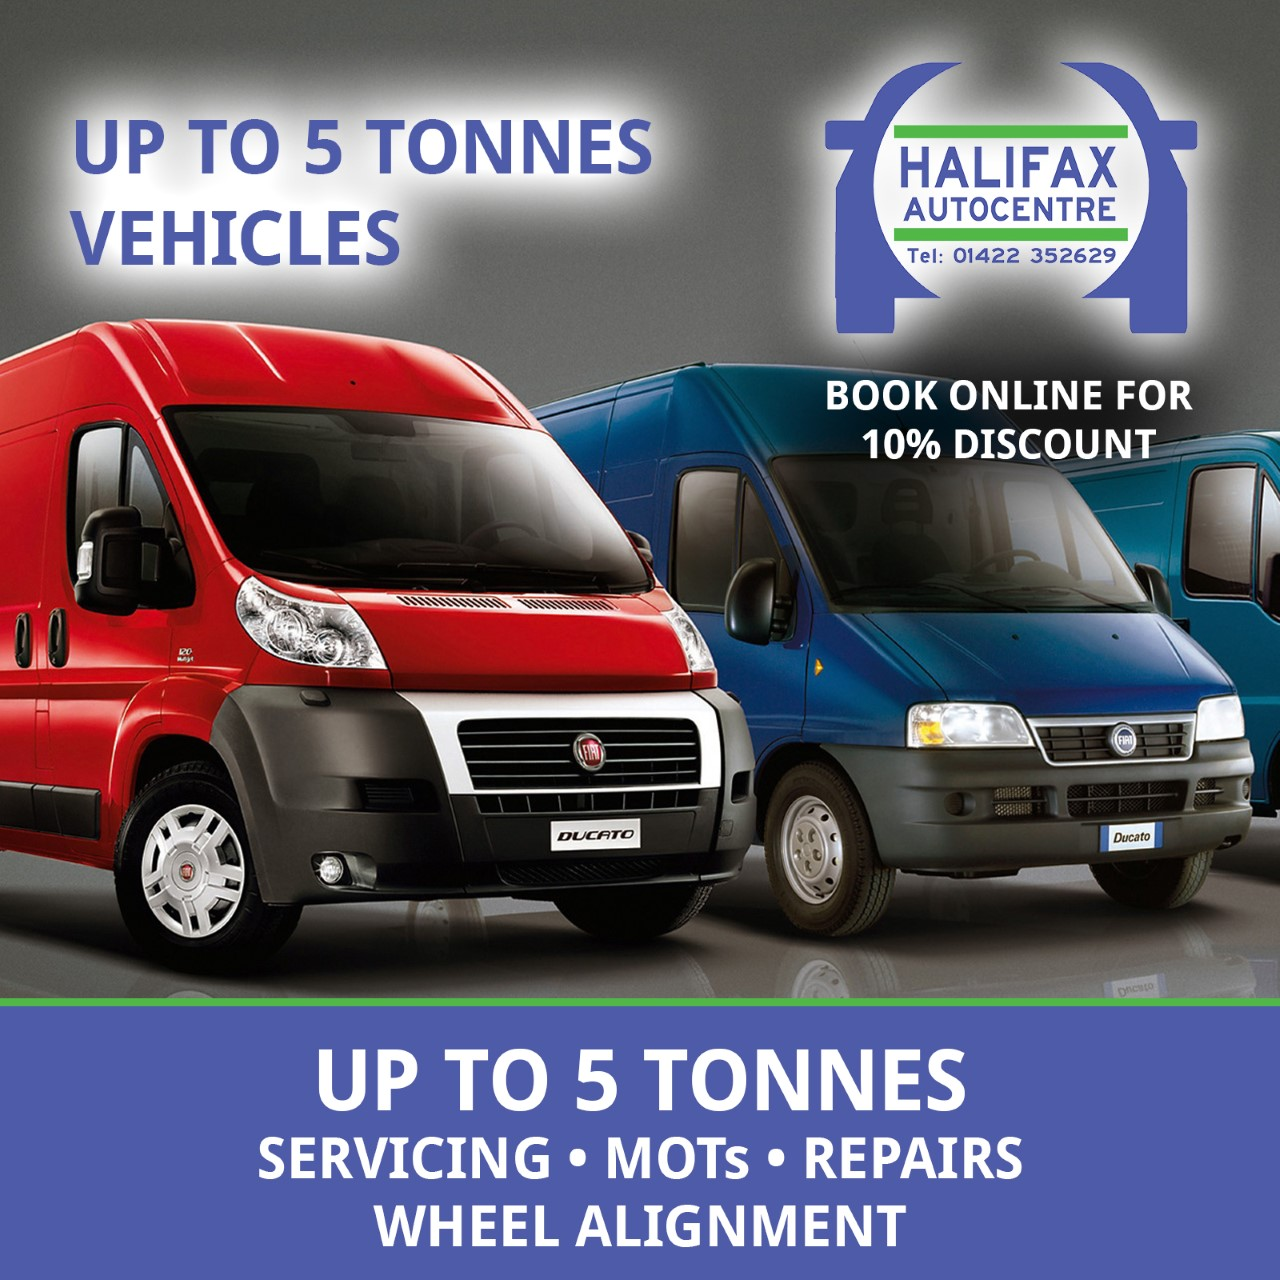 Halifax Autocentre - Commercial Vehicle Servicing